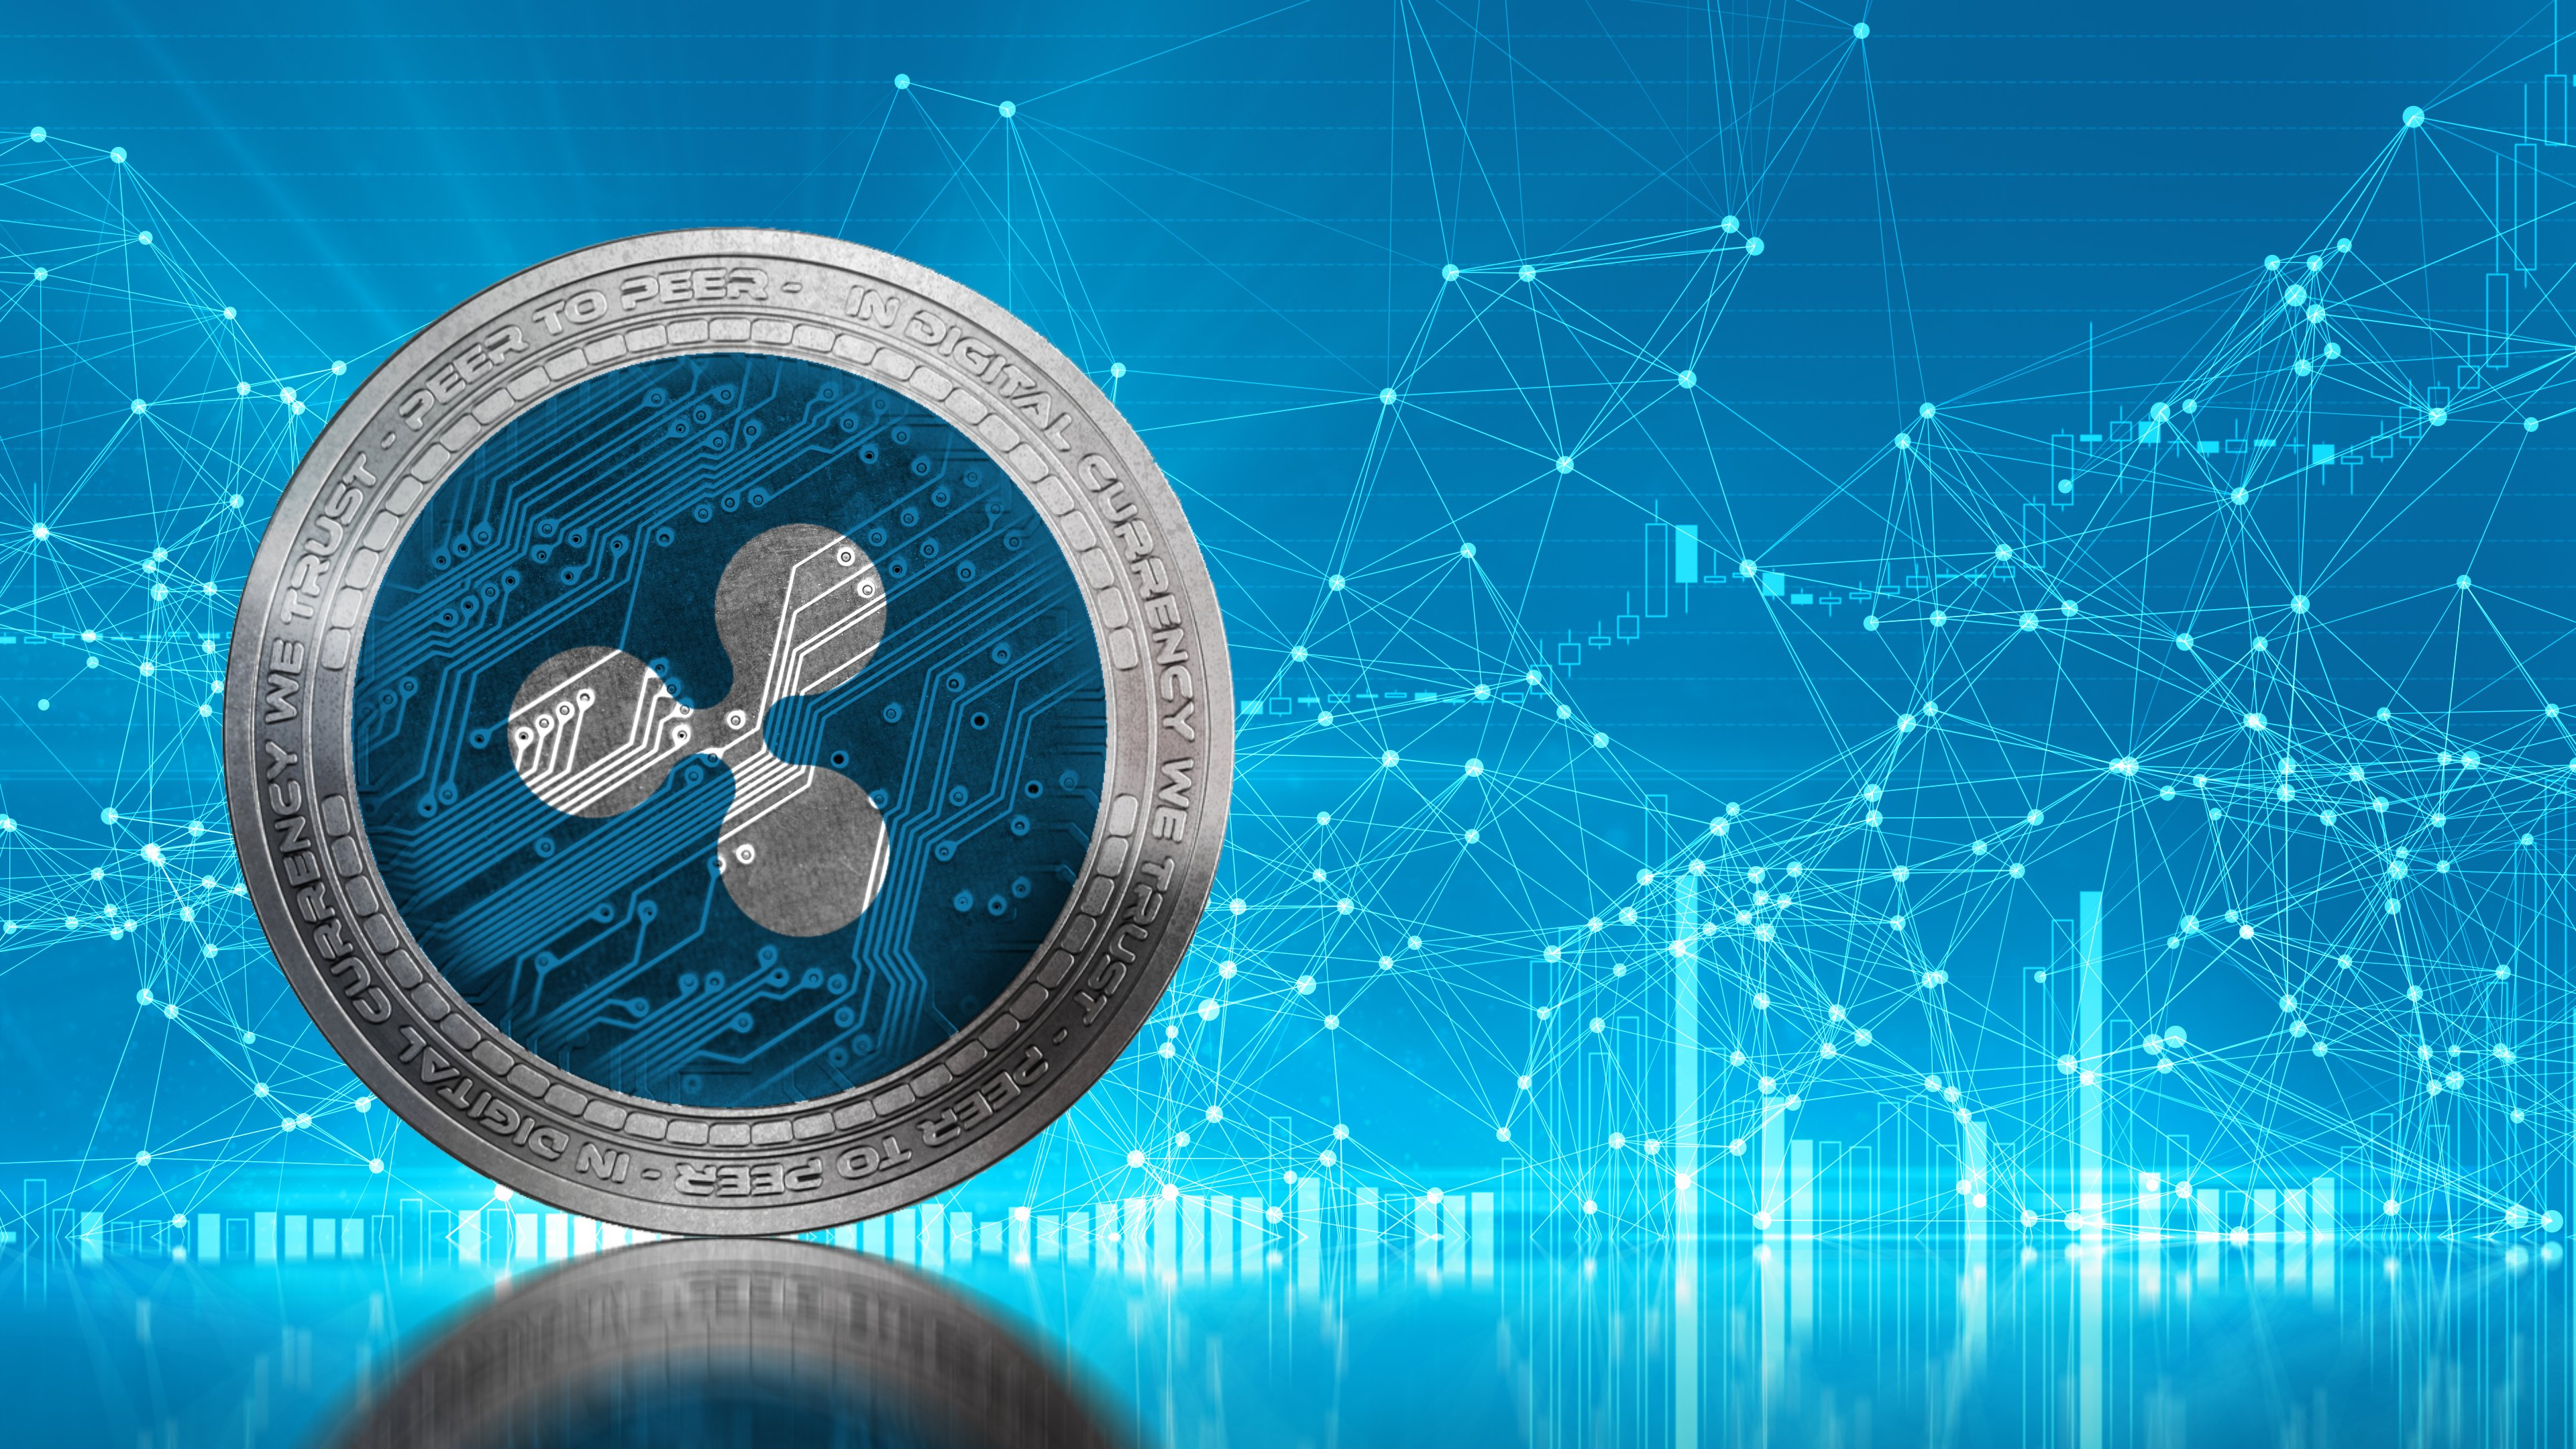 Xrp coin faucet join - Reddcoin 10 dollars to pounds